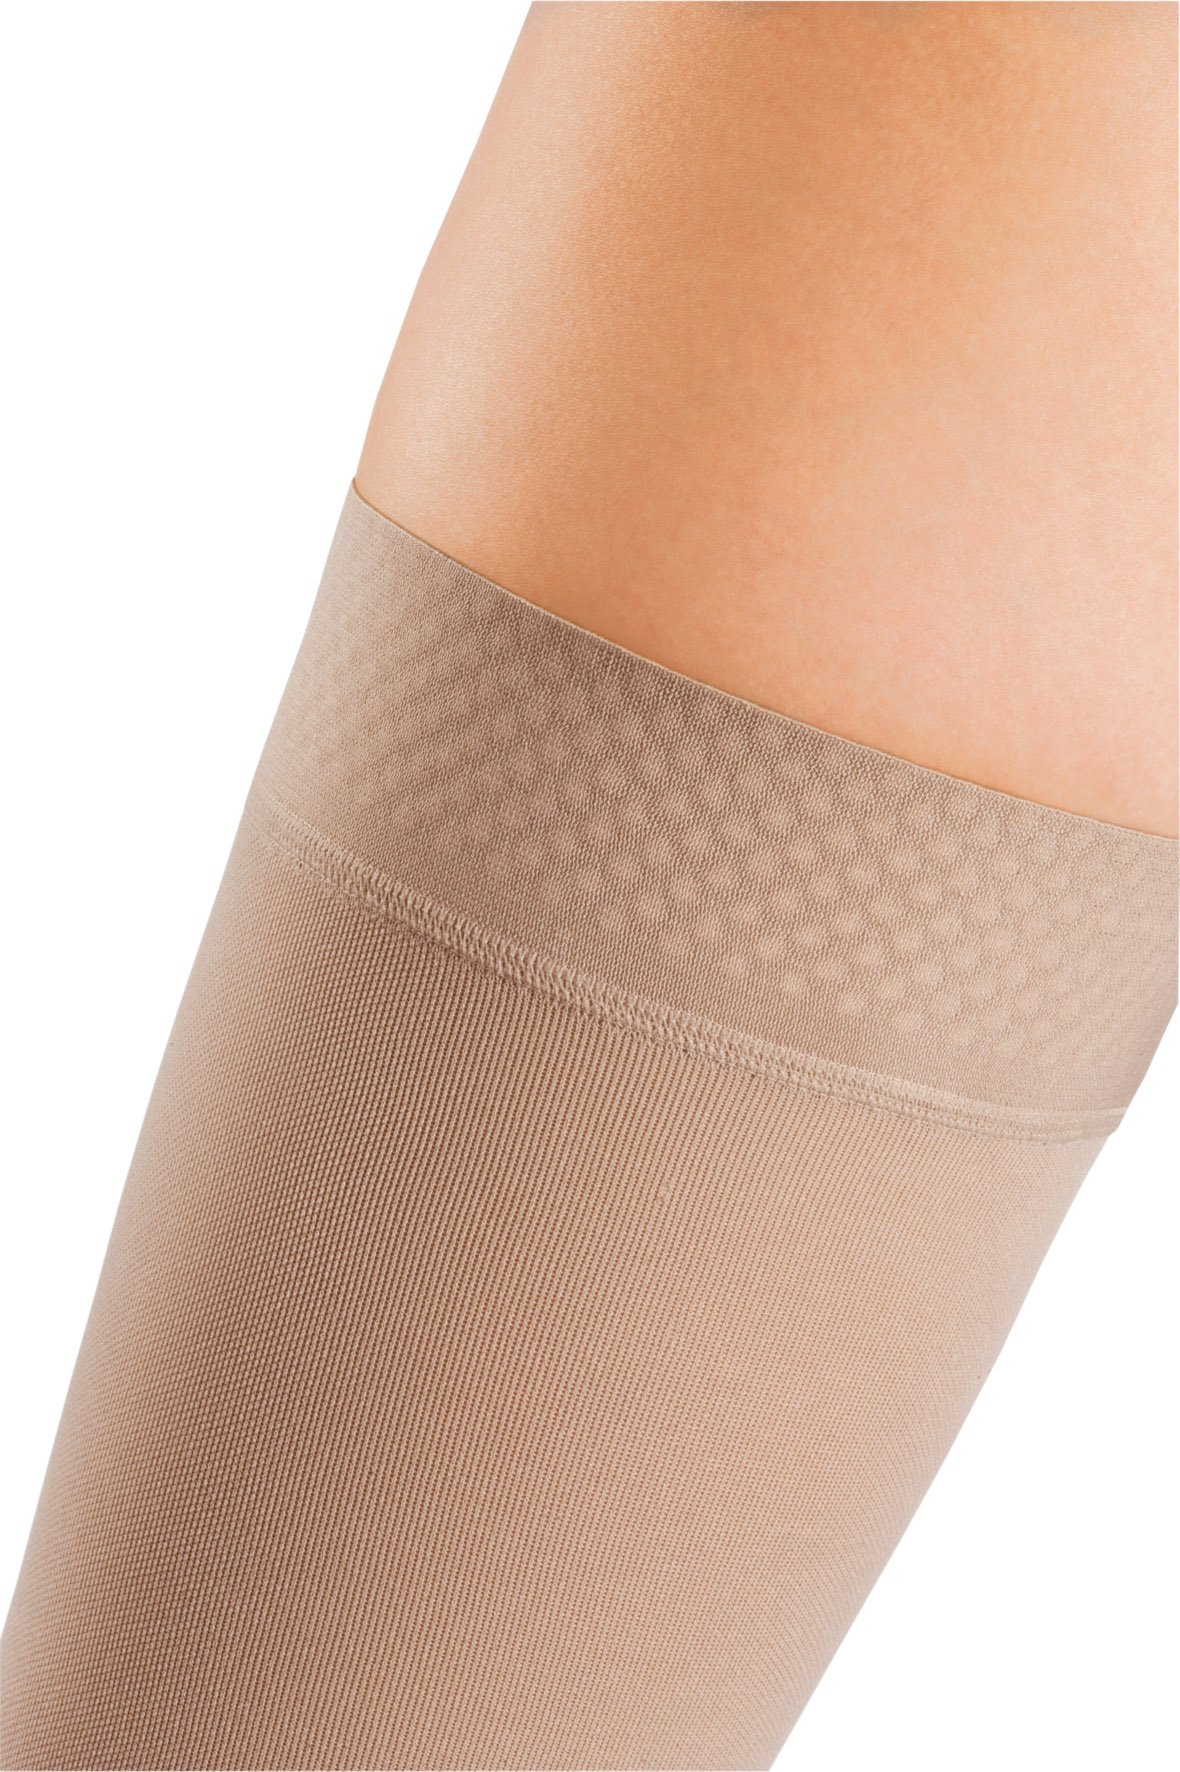 mediven Comfort, 20-30 mmHg, Thigh High Compression Stockings w/Silicone Top-Band, Closed Toe by mediven (Image #2)